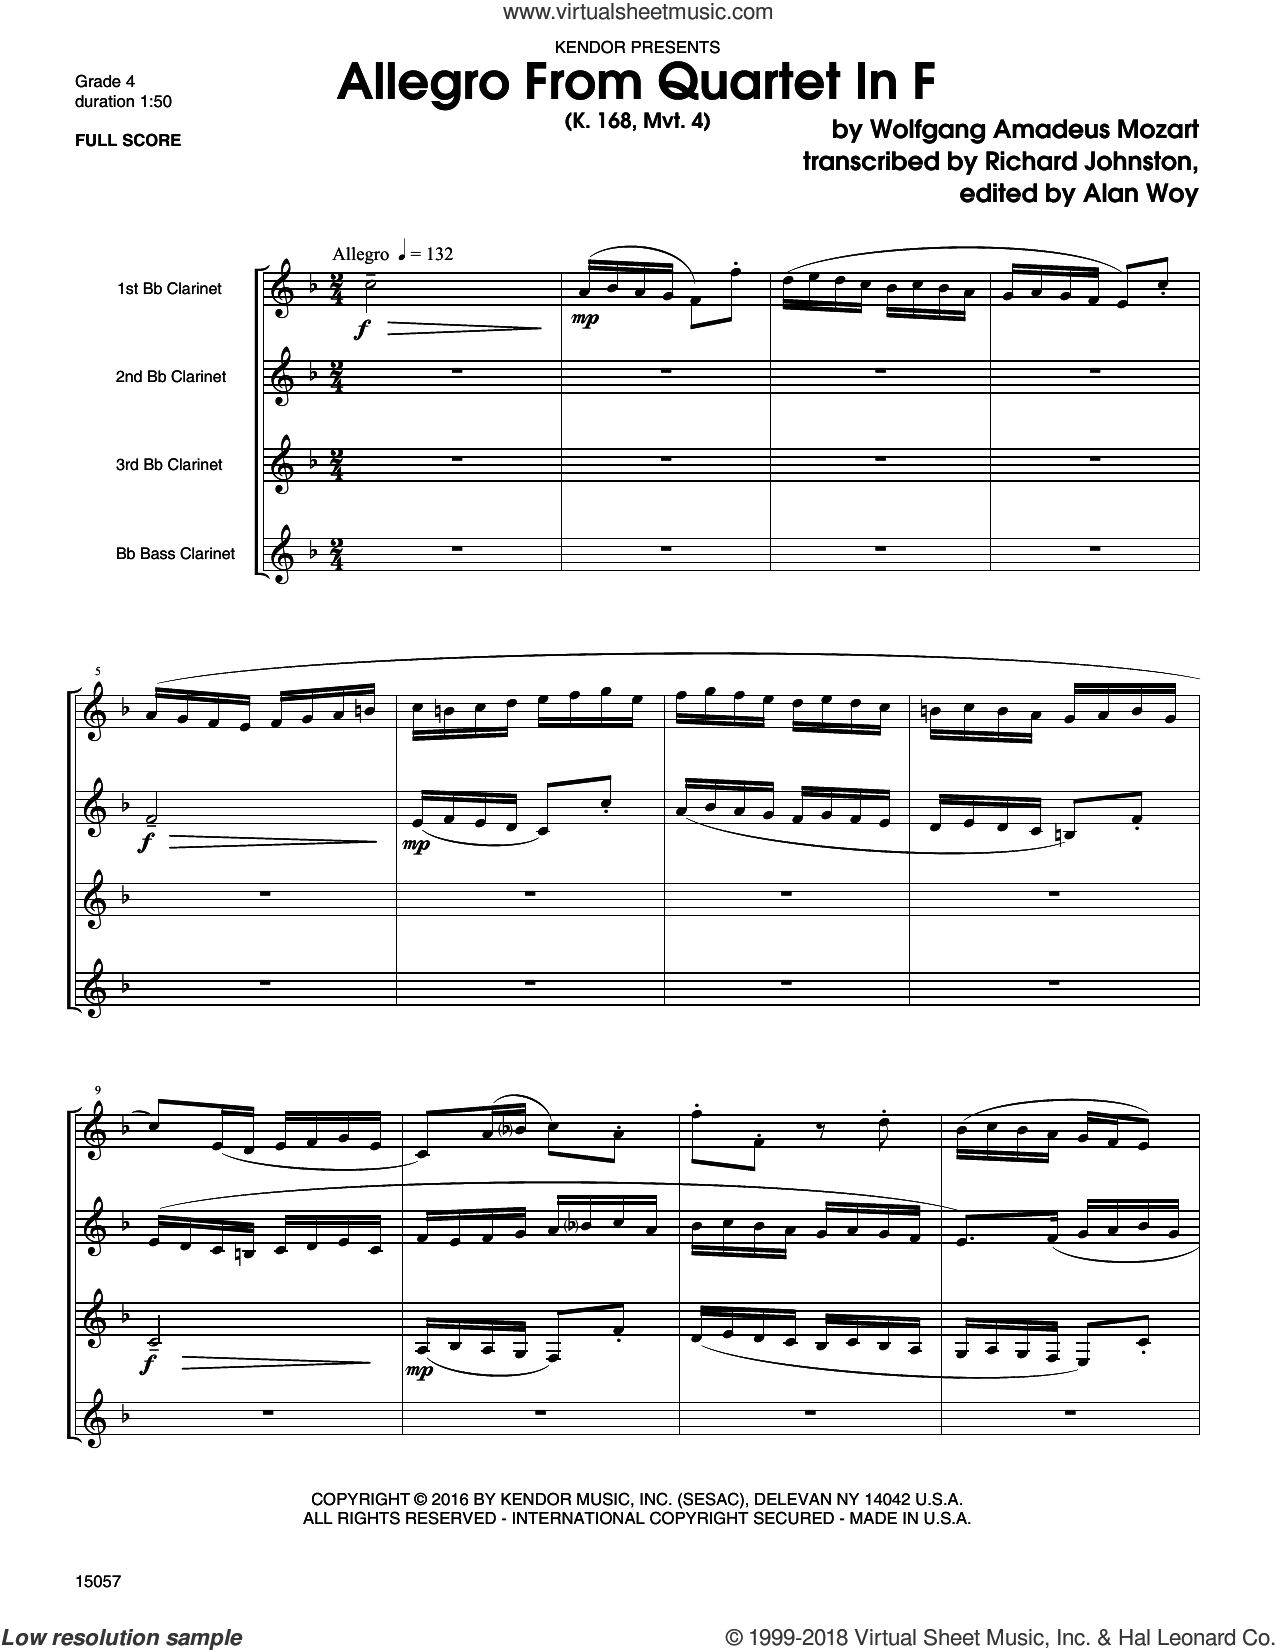 Allegro From Quartet In F (K. 168, Mvt. 4) (COMPLETE) sheet music for clarinet quartet by Wolfgang Amadeus Mozart, Alan Woy and Richard Johnston, classical score, intermediate skill level